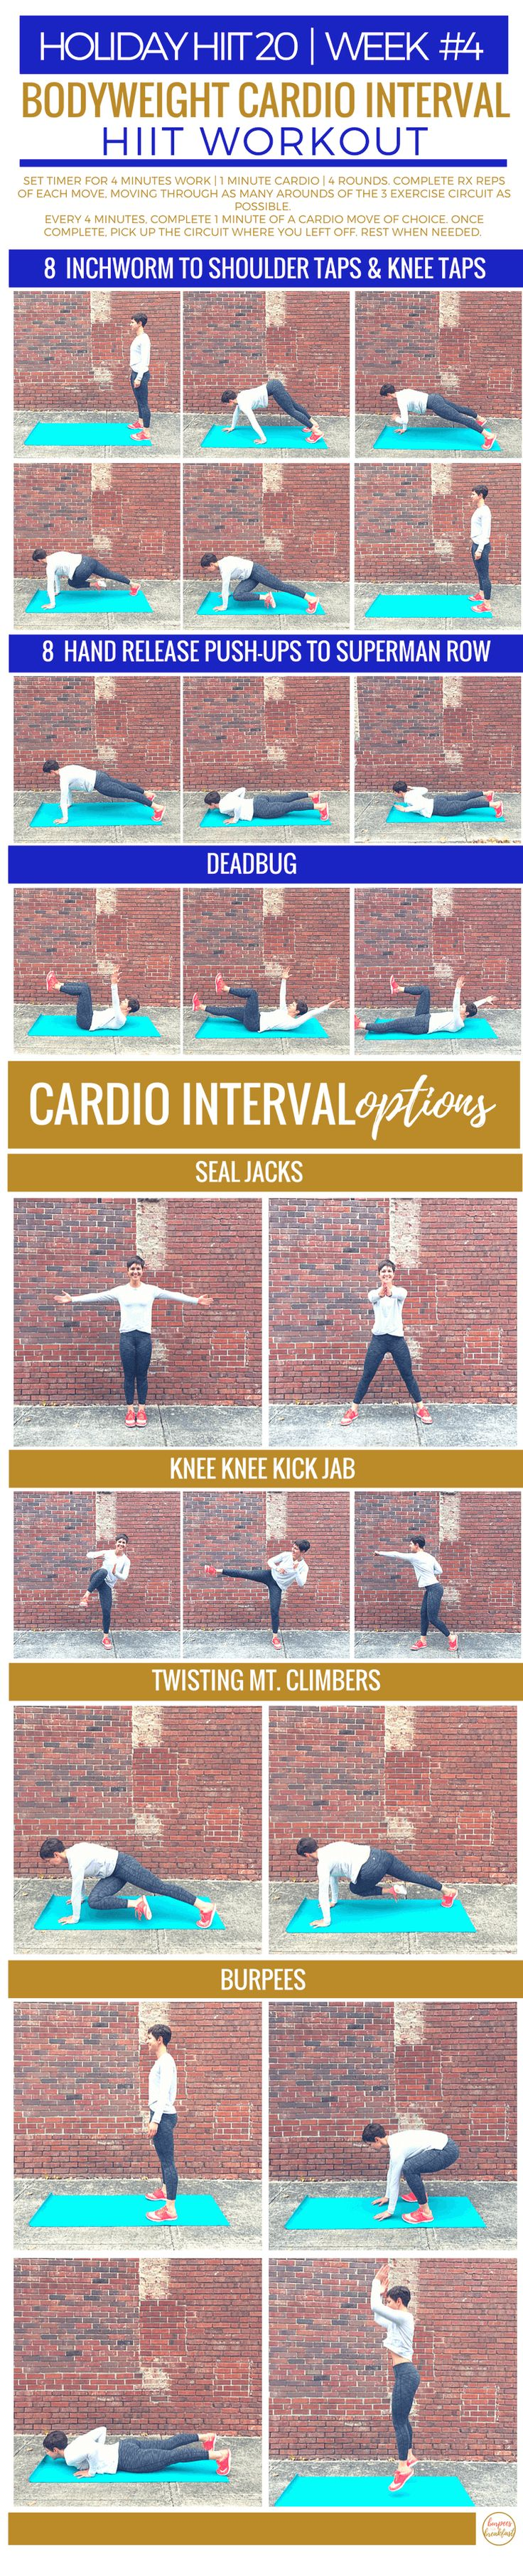 This Bodyweight Cardio Interval Workout is a perfect quickie workout. | Burpees for Breakfast